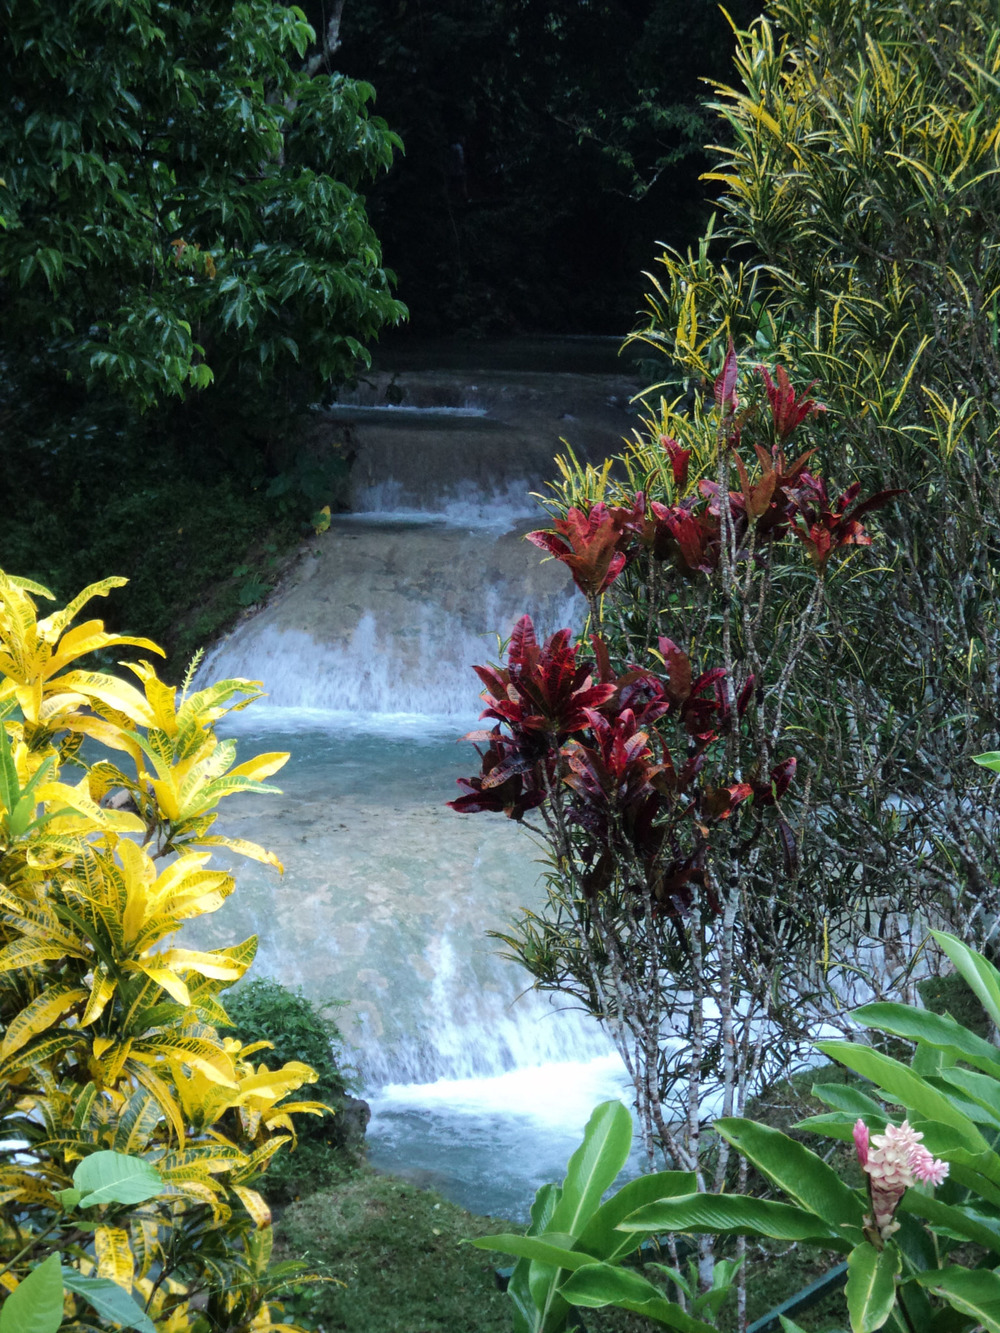 Much like other South Pacific islands, the natural beauty of Vanuatu is stunning.